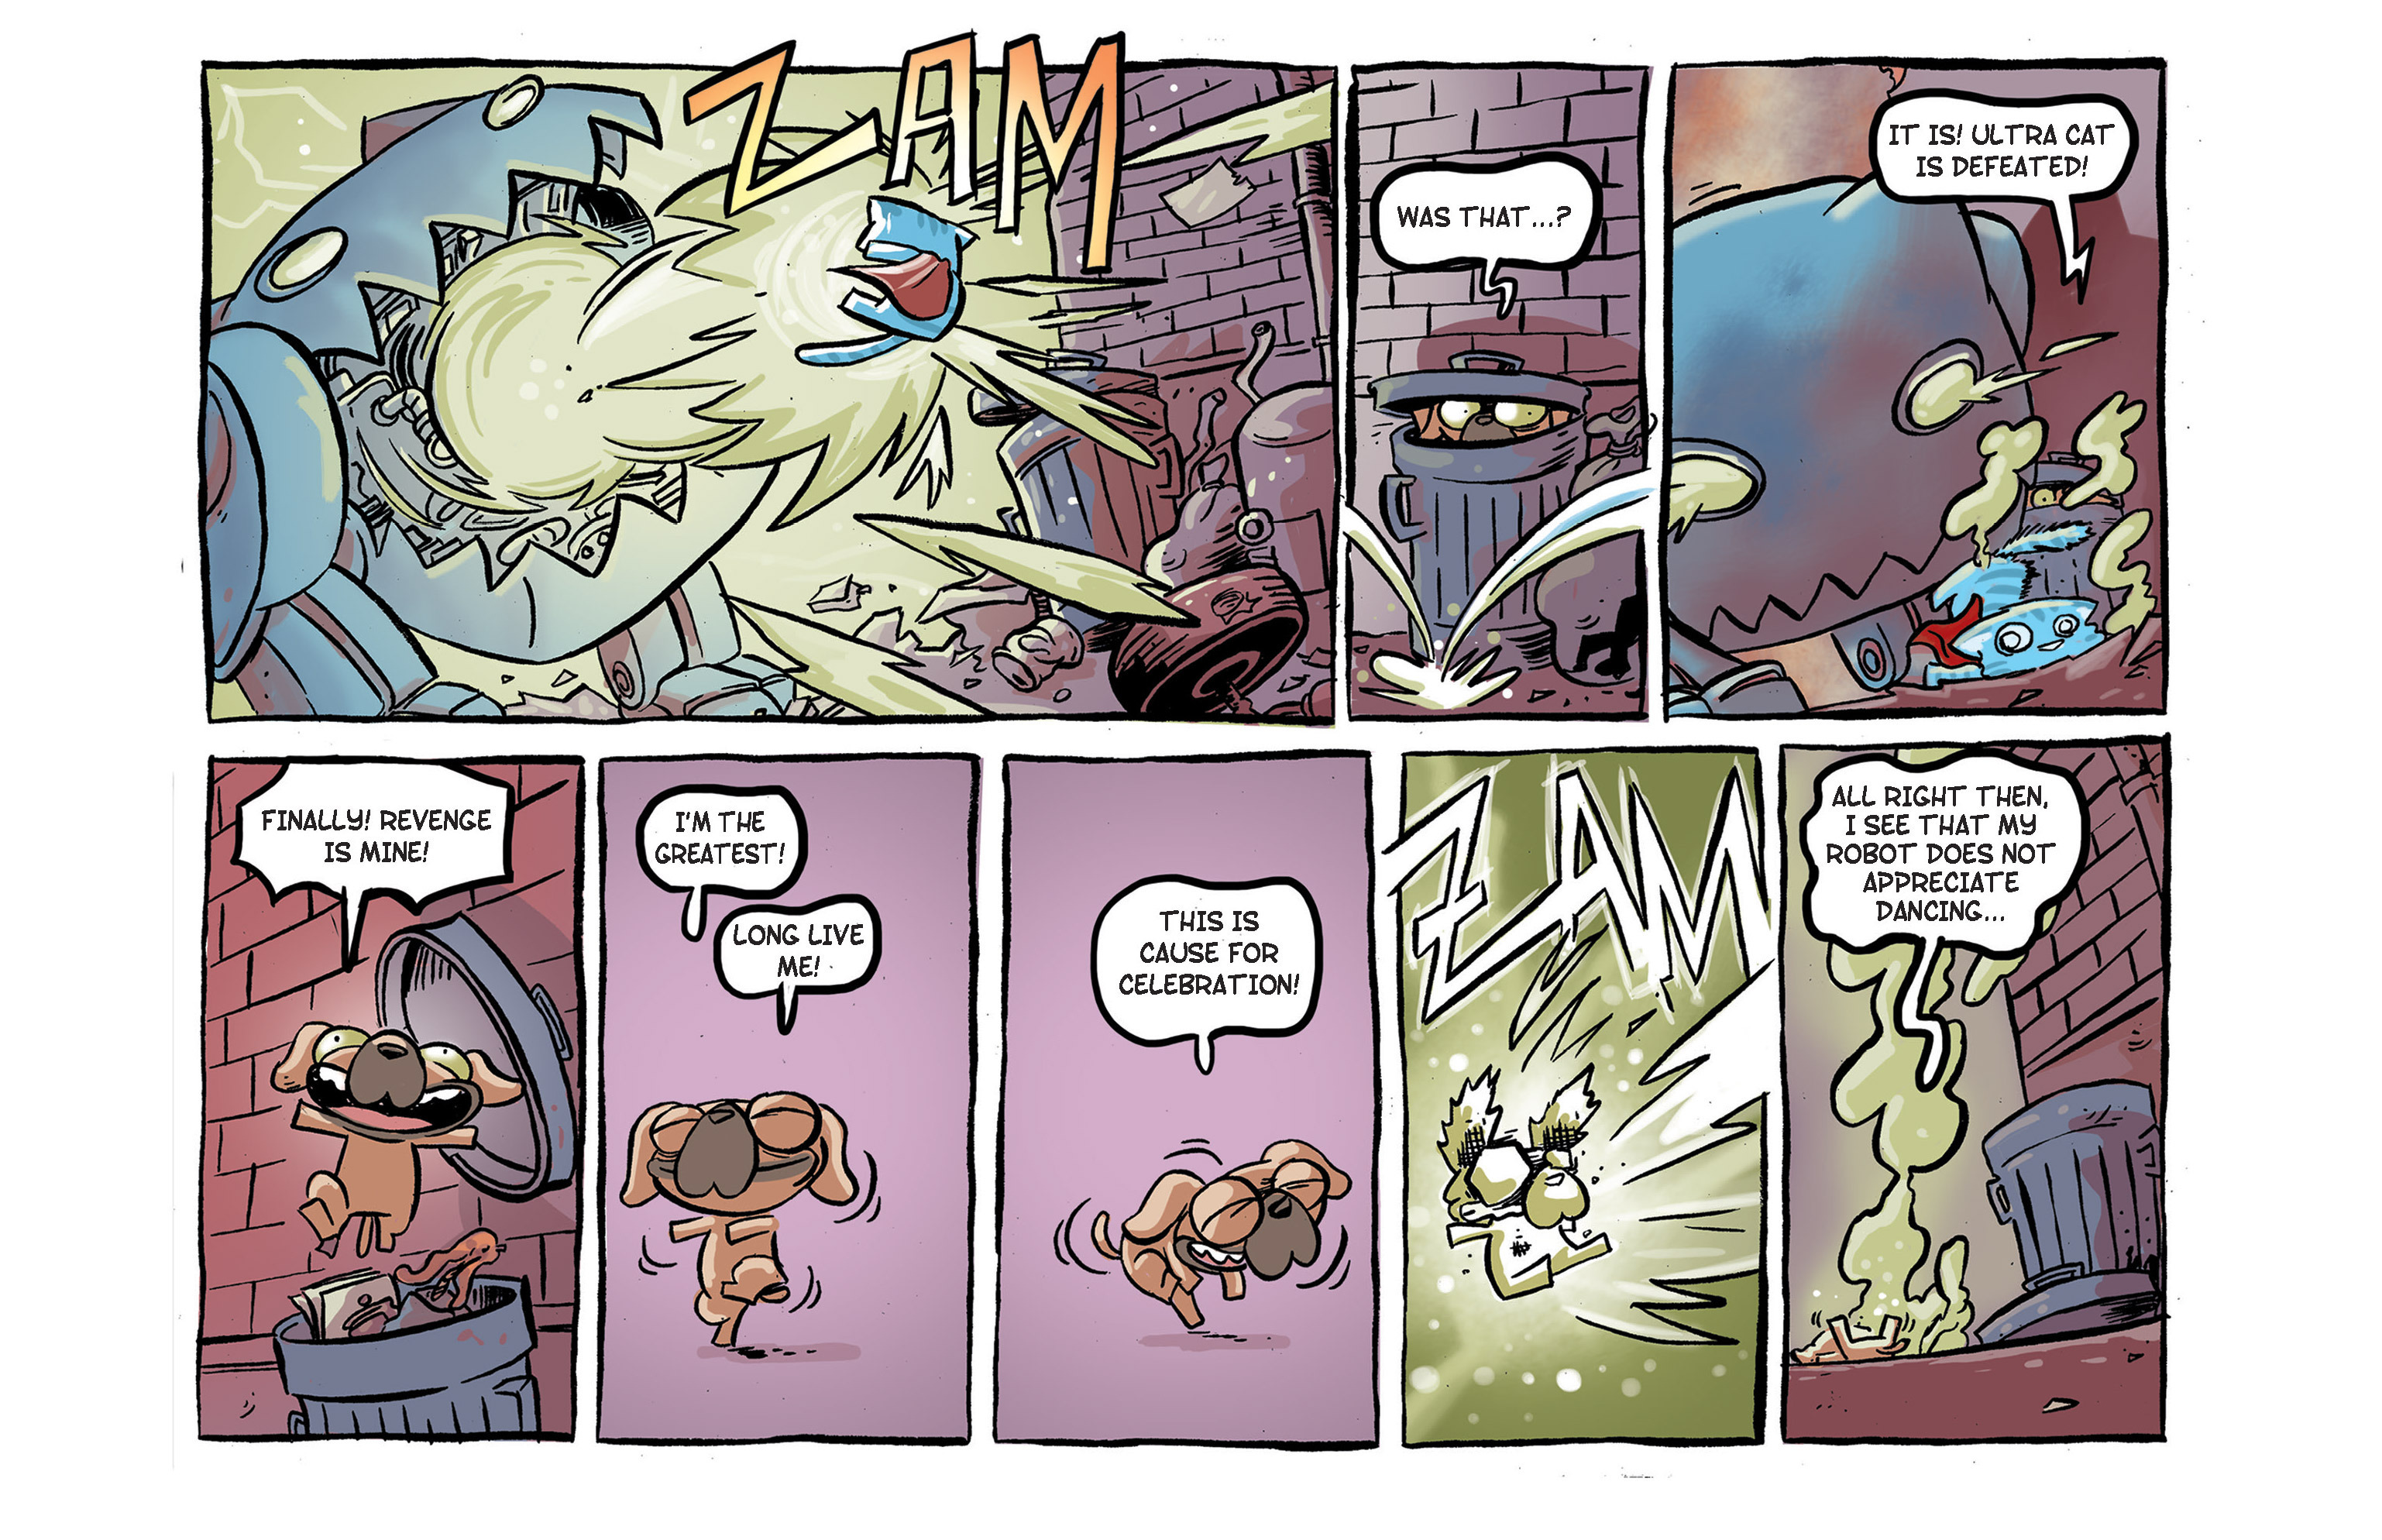 Read online Ultracat comic -  Issue #2 - 24